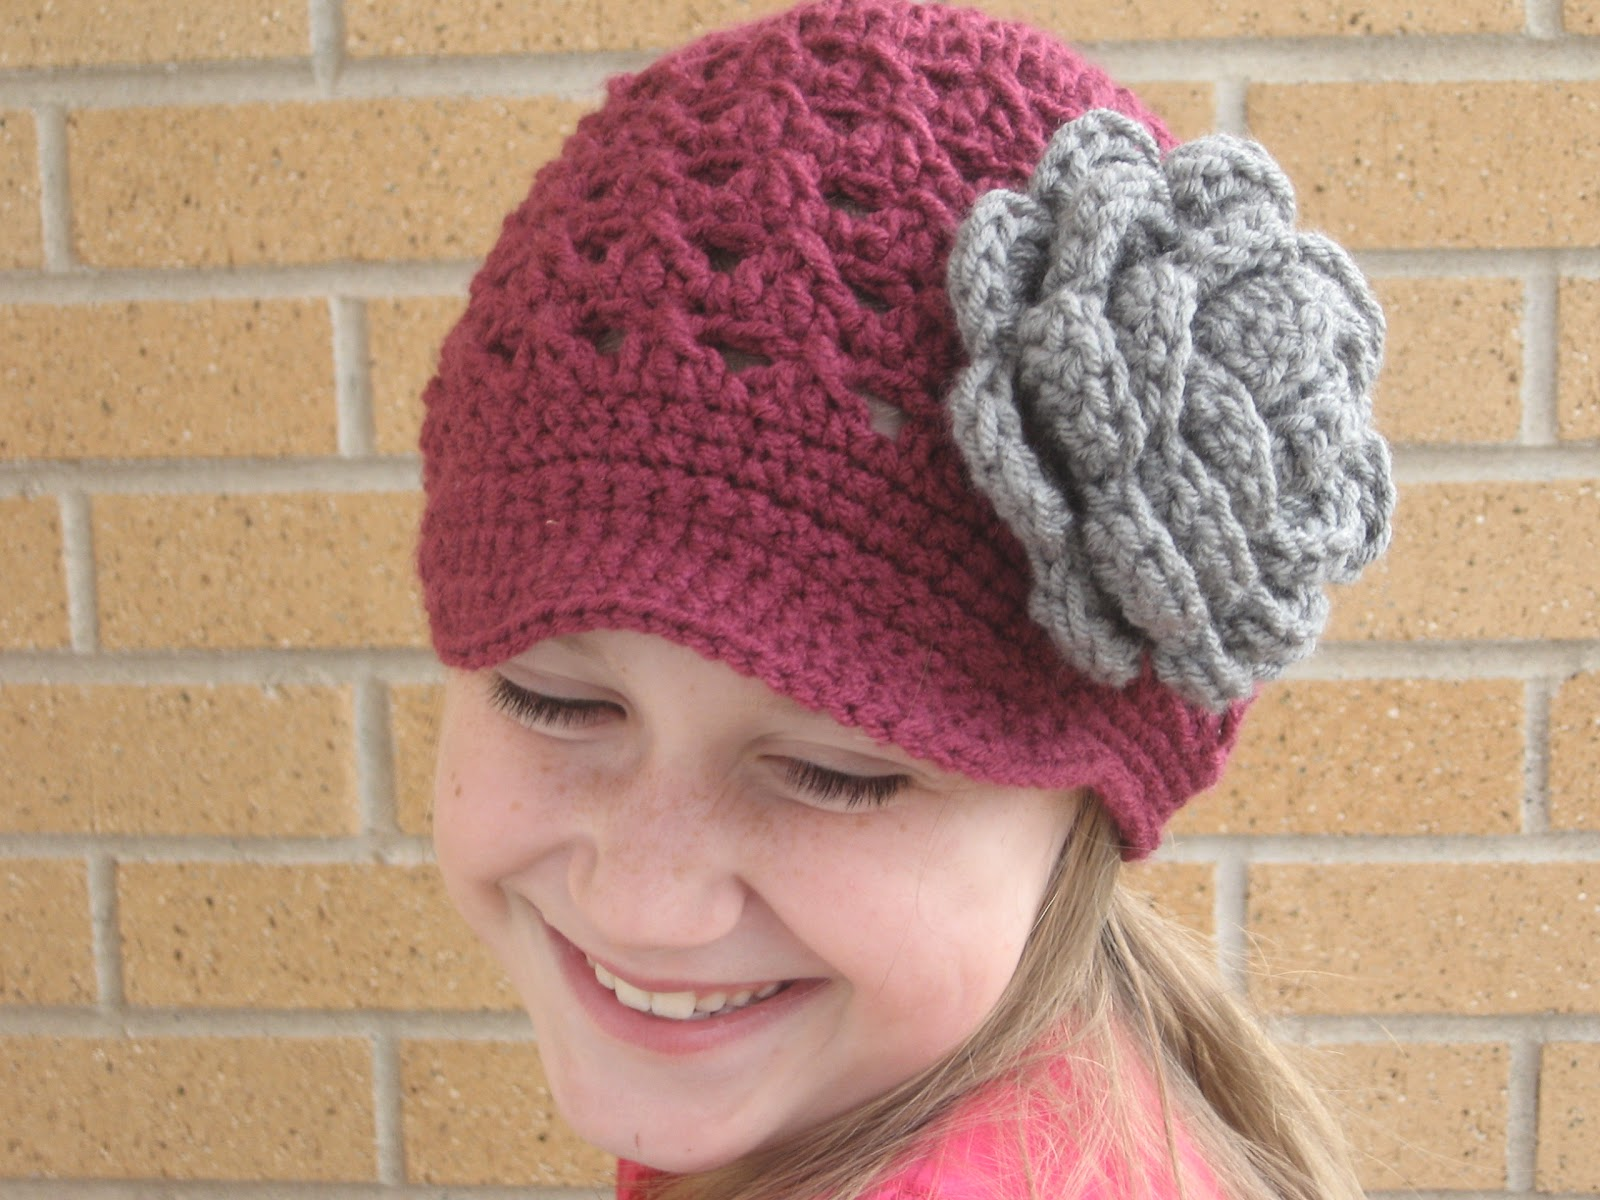 Free Crochet Pattern For Toddler Newsboy Hat